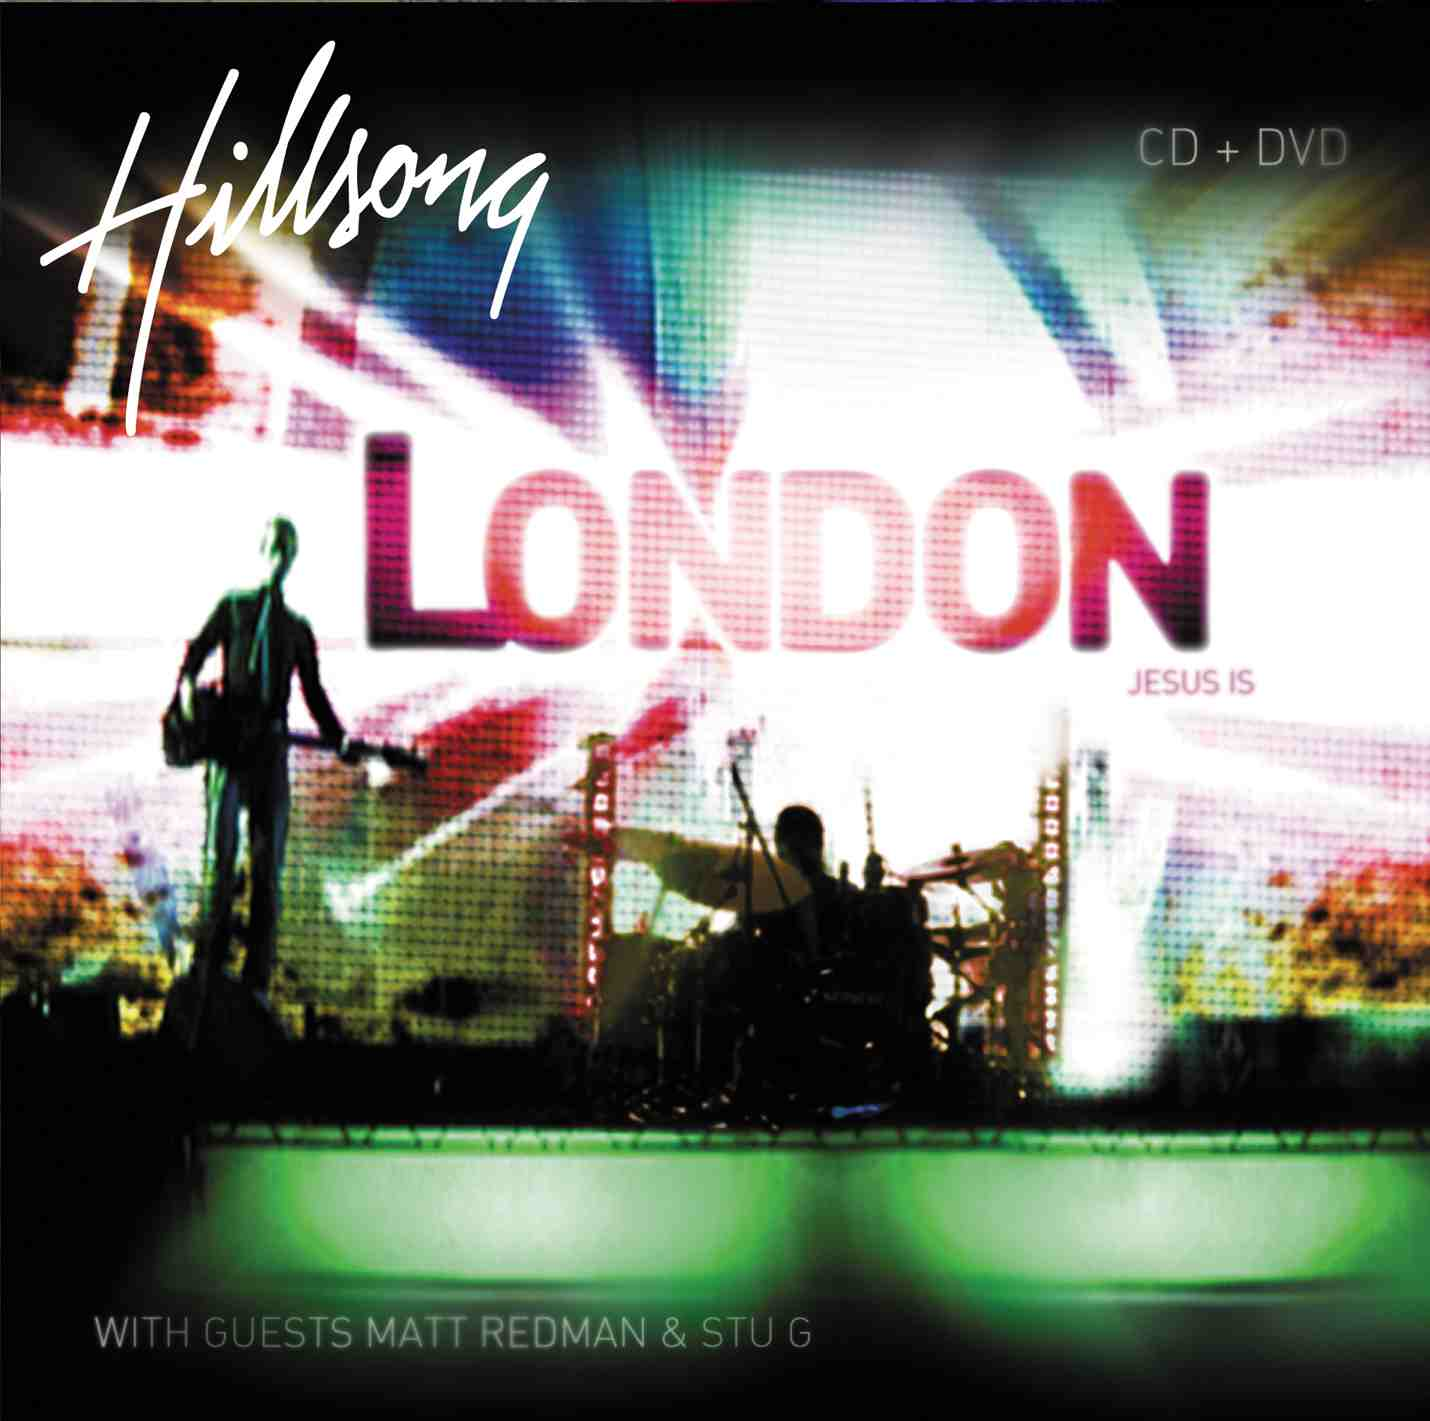 hillsong london Wallpaper   Christian Wallpapers and Backgrounds 1430x1421